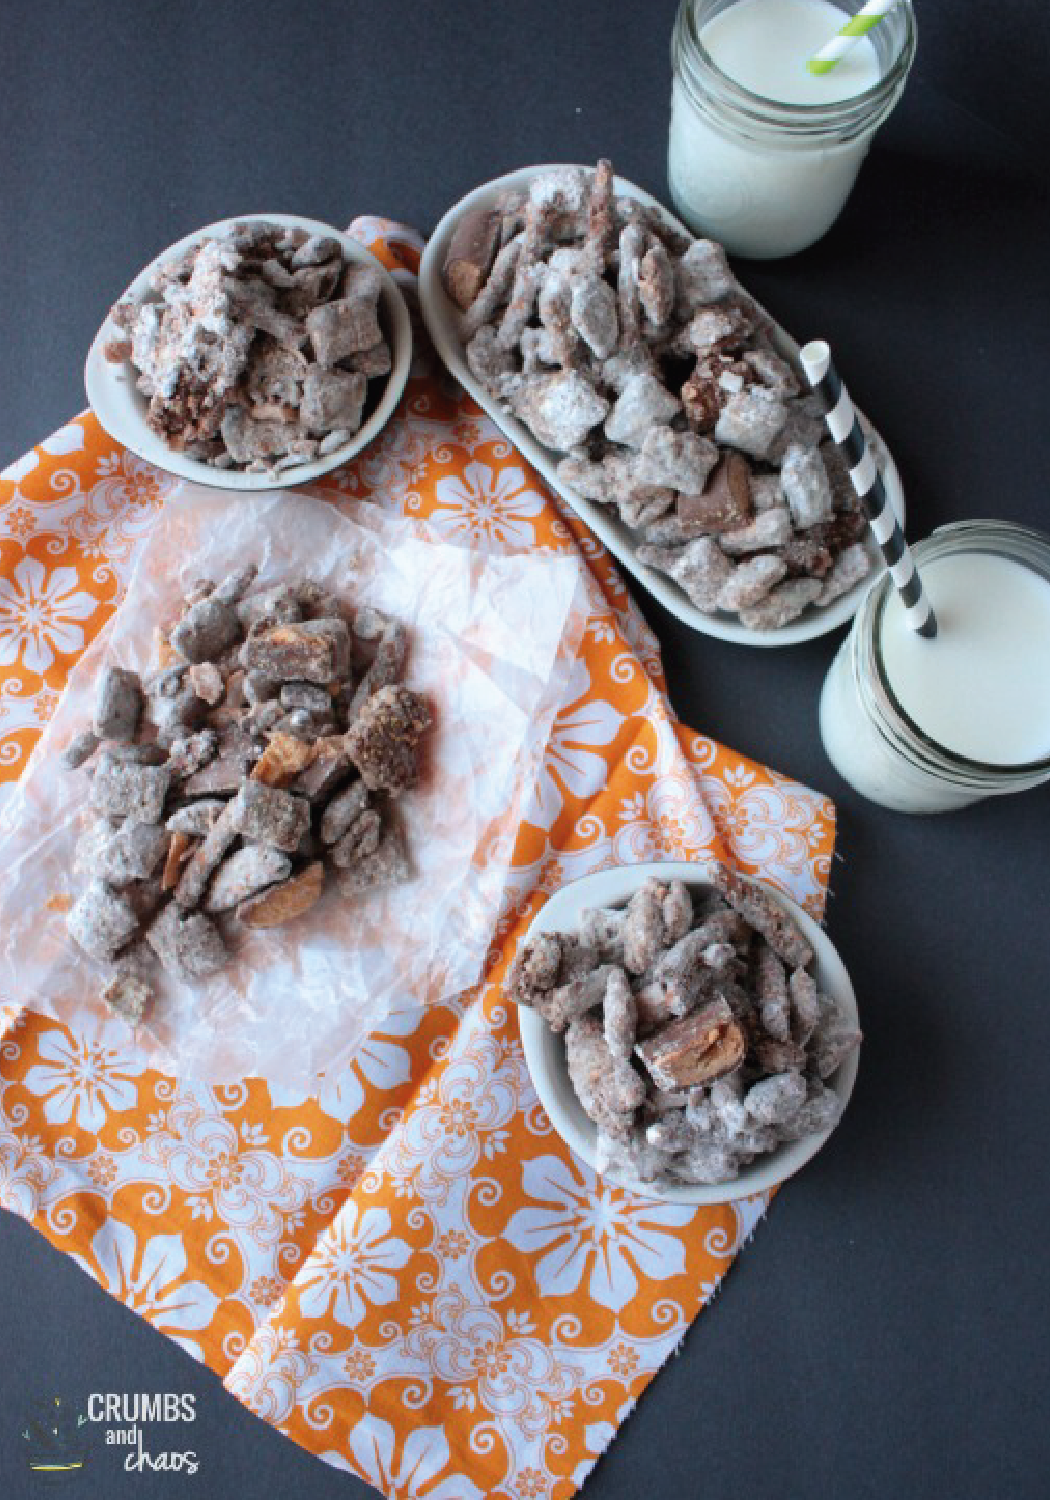 Having friends over for a casual get-together and wanting to offer them a sweet treat that they can't resist? Butterfinger Muddy Buddies make a great snack to serve to your guests. Made with Mini BUTTERFINGER® candy bars, this recipe is full of crispety, crunchety, peanut-buttery goodness.